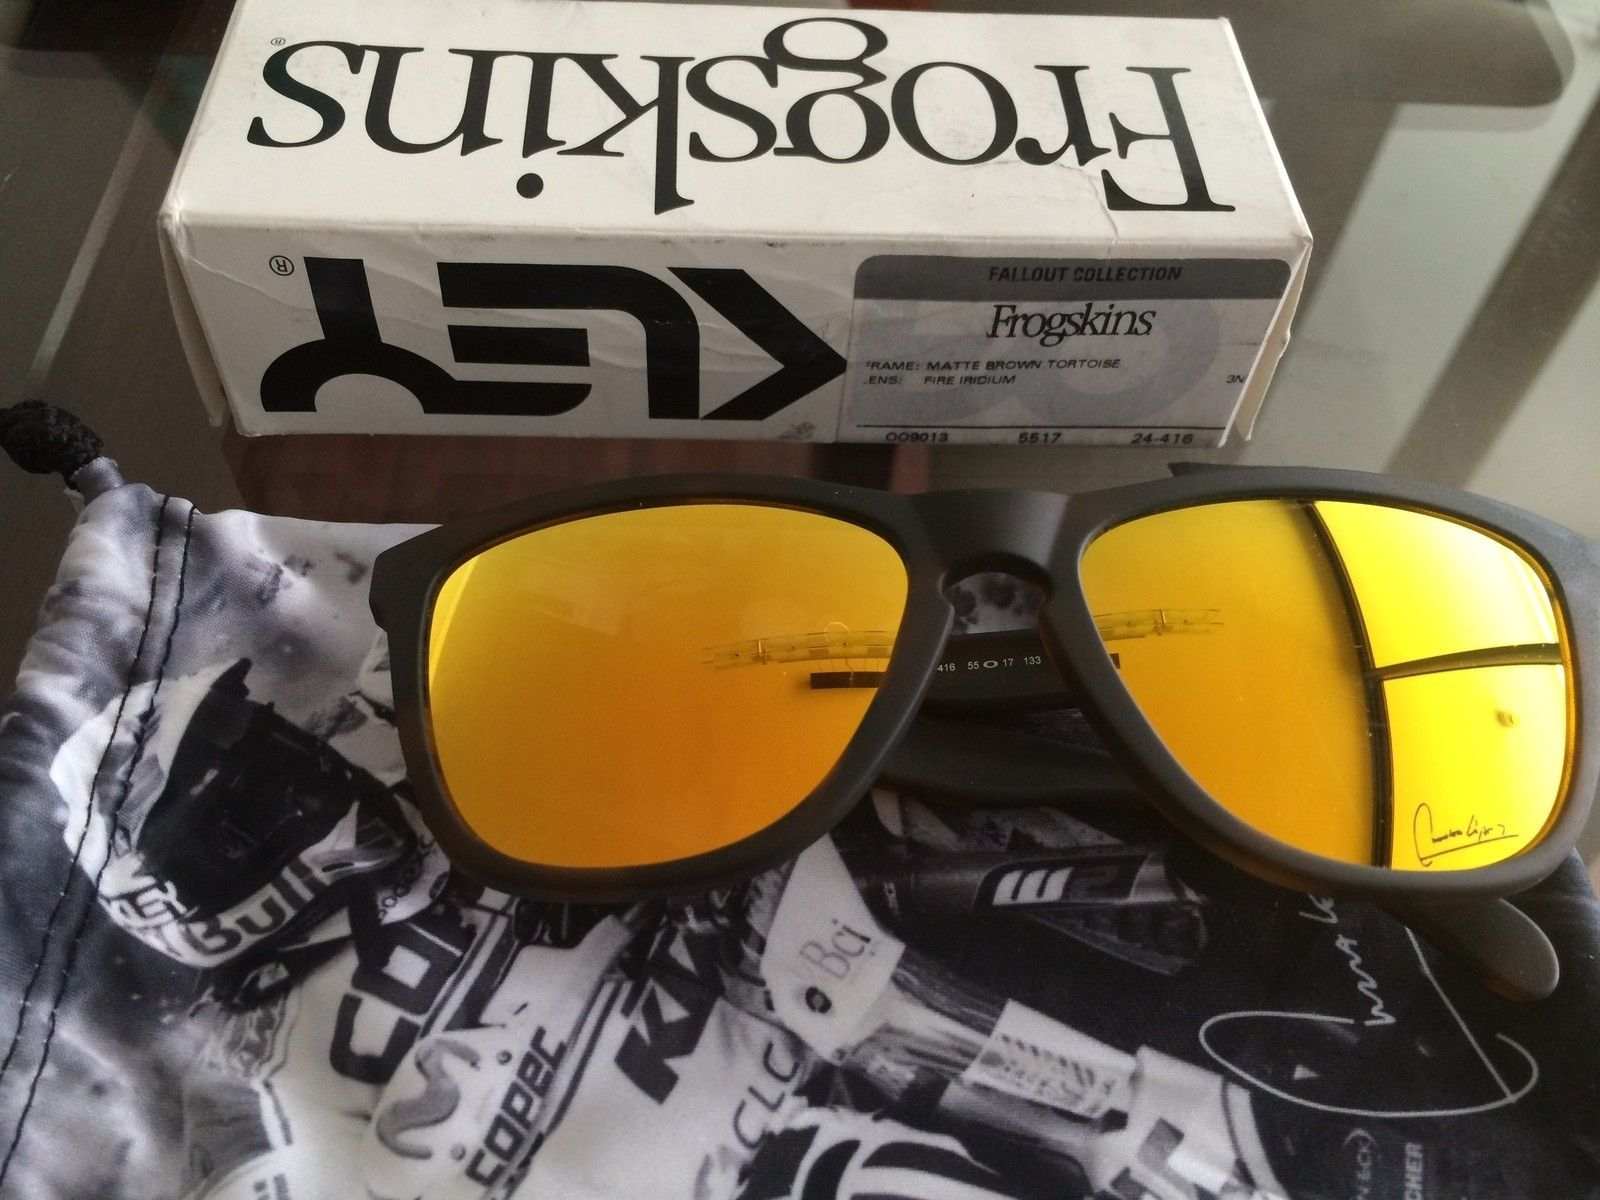 """Frogskins Fallout Collection """"Chaleco Lopez Signature serie"""" variation - la foto 4.JPG"""